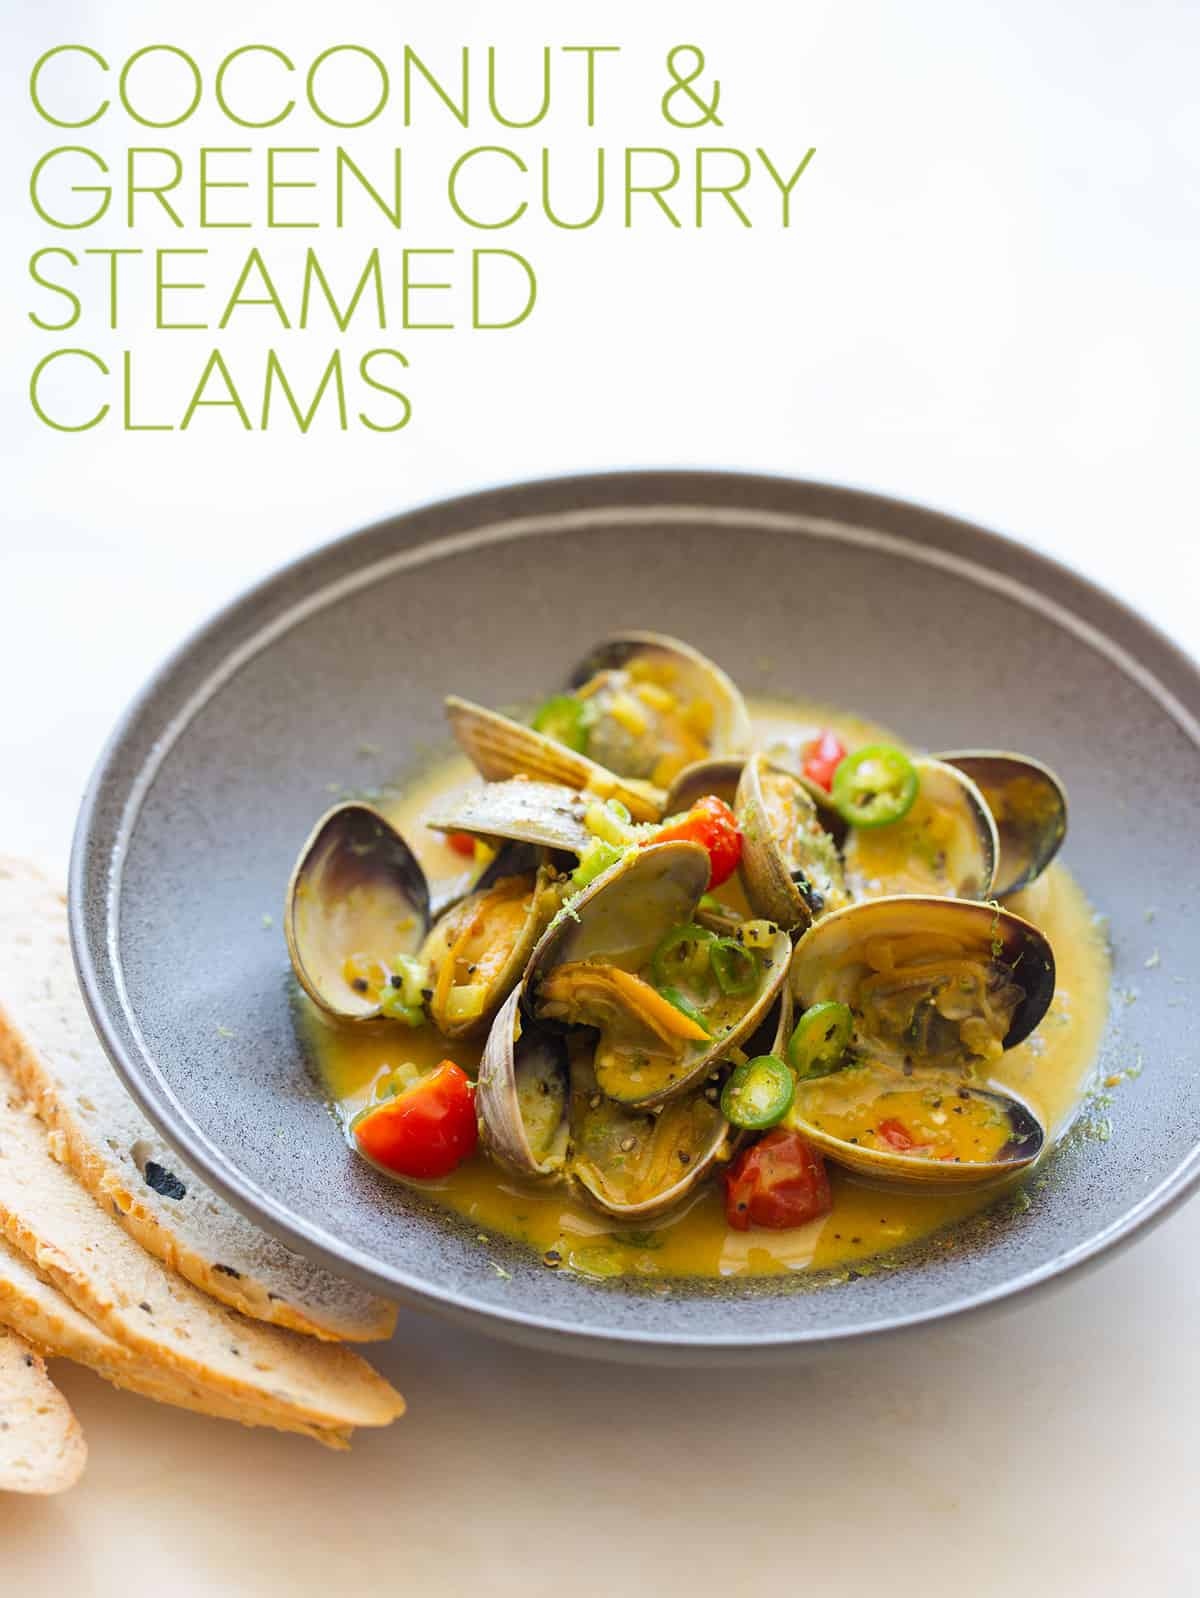 Coconut & Green Curry Steamed Clams | Spoon Fork Bacon